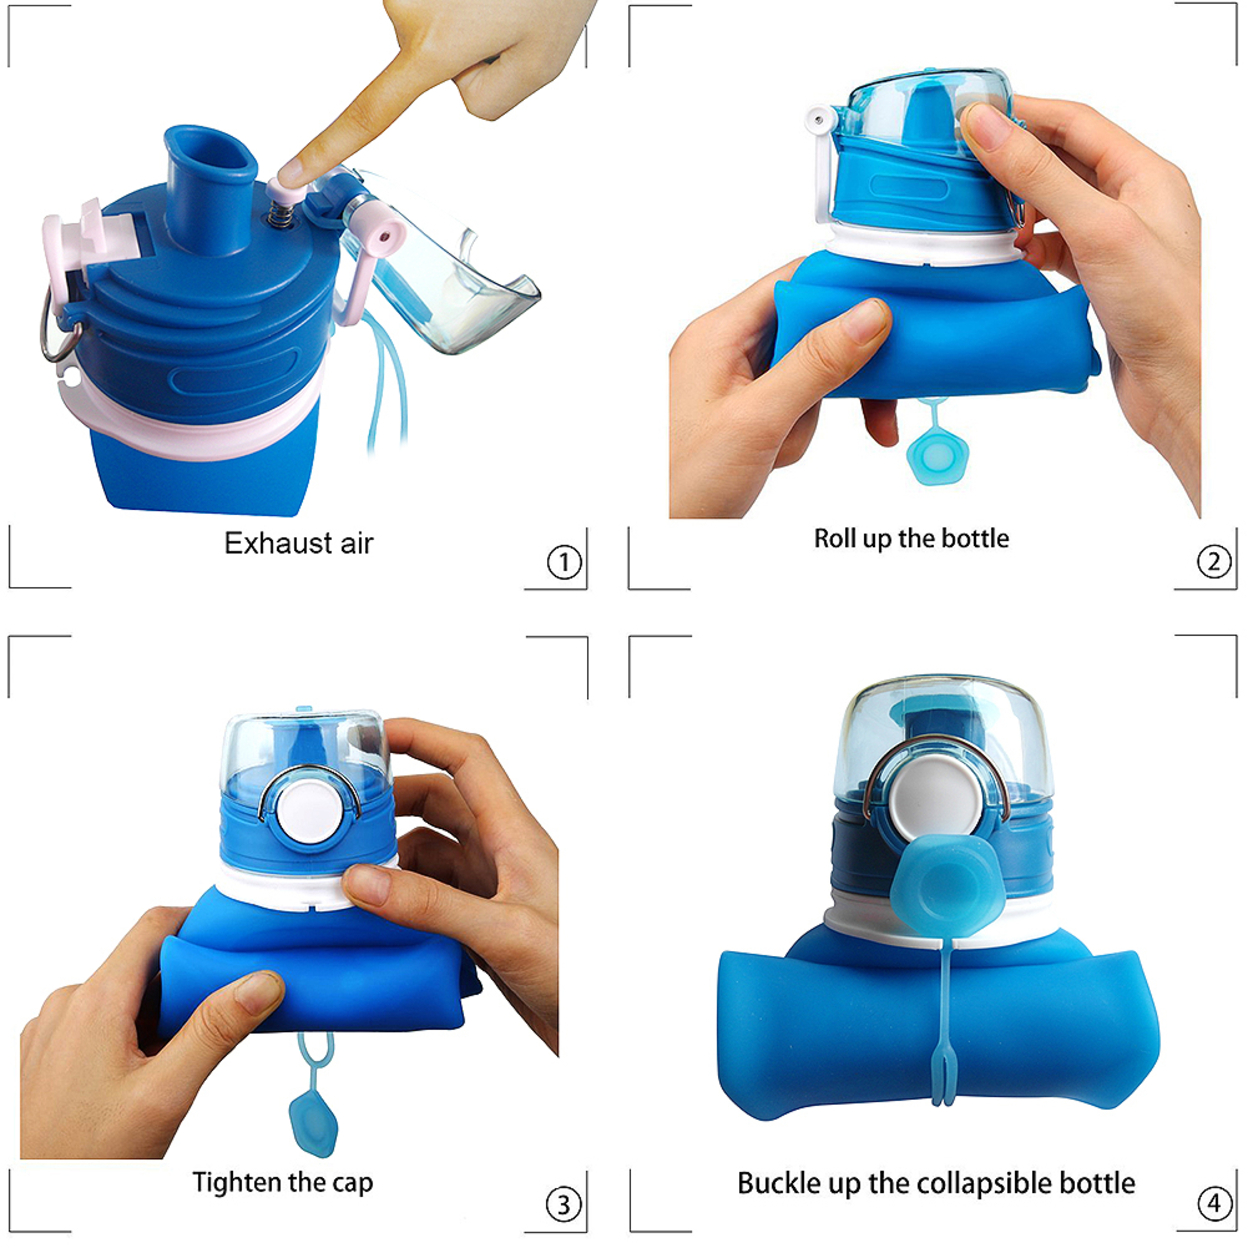 Foldable Water Bottle Leak Proof Silicone Bottle Outdoor Foldable Bottles - blue 5a02b9b5cd5c860e4726b66f